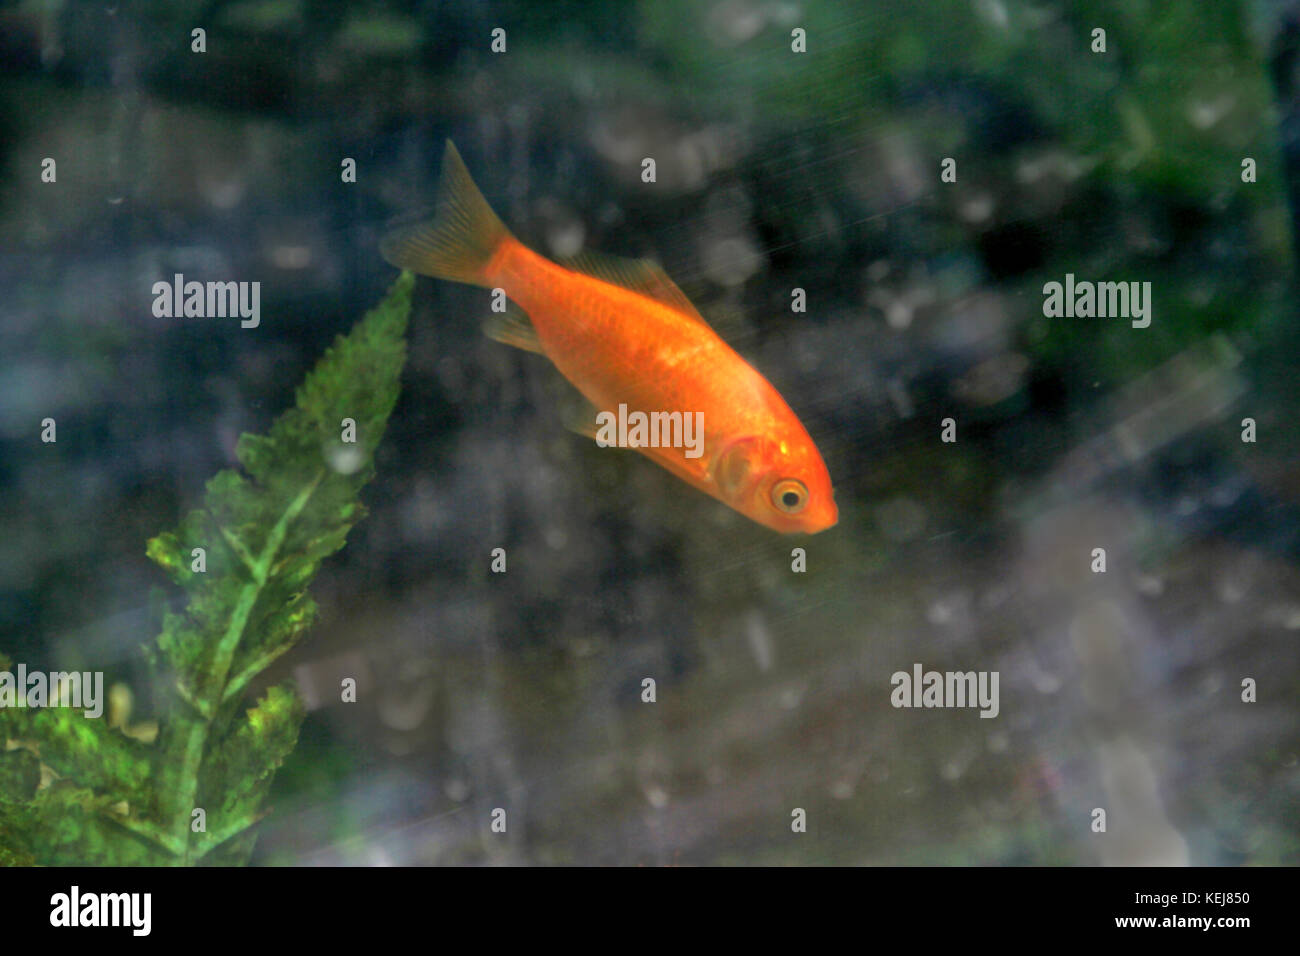 Agile, pink fish swiftly moving up and down in aquarium - Stock Image